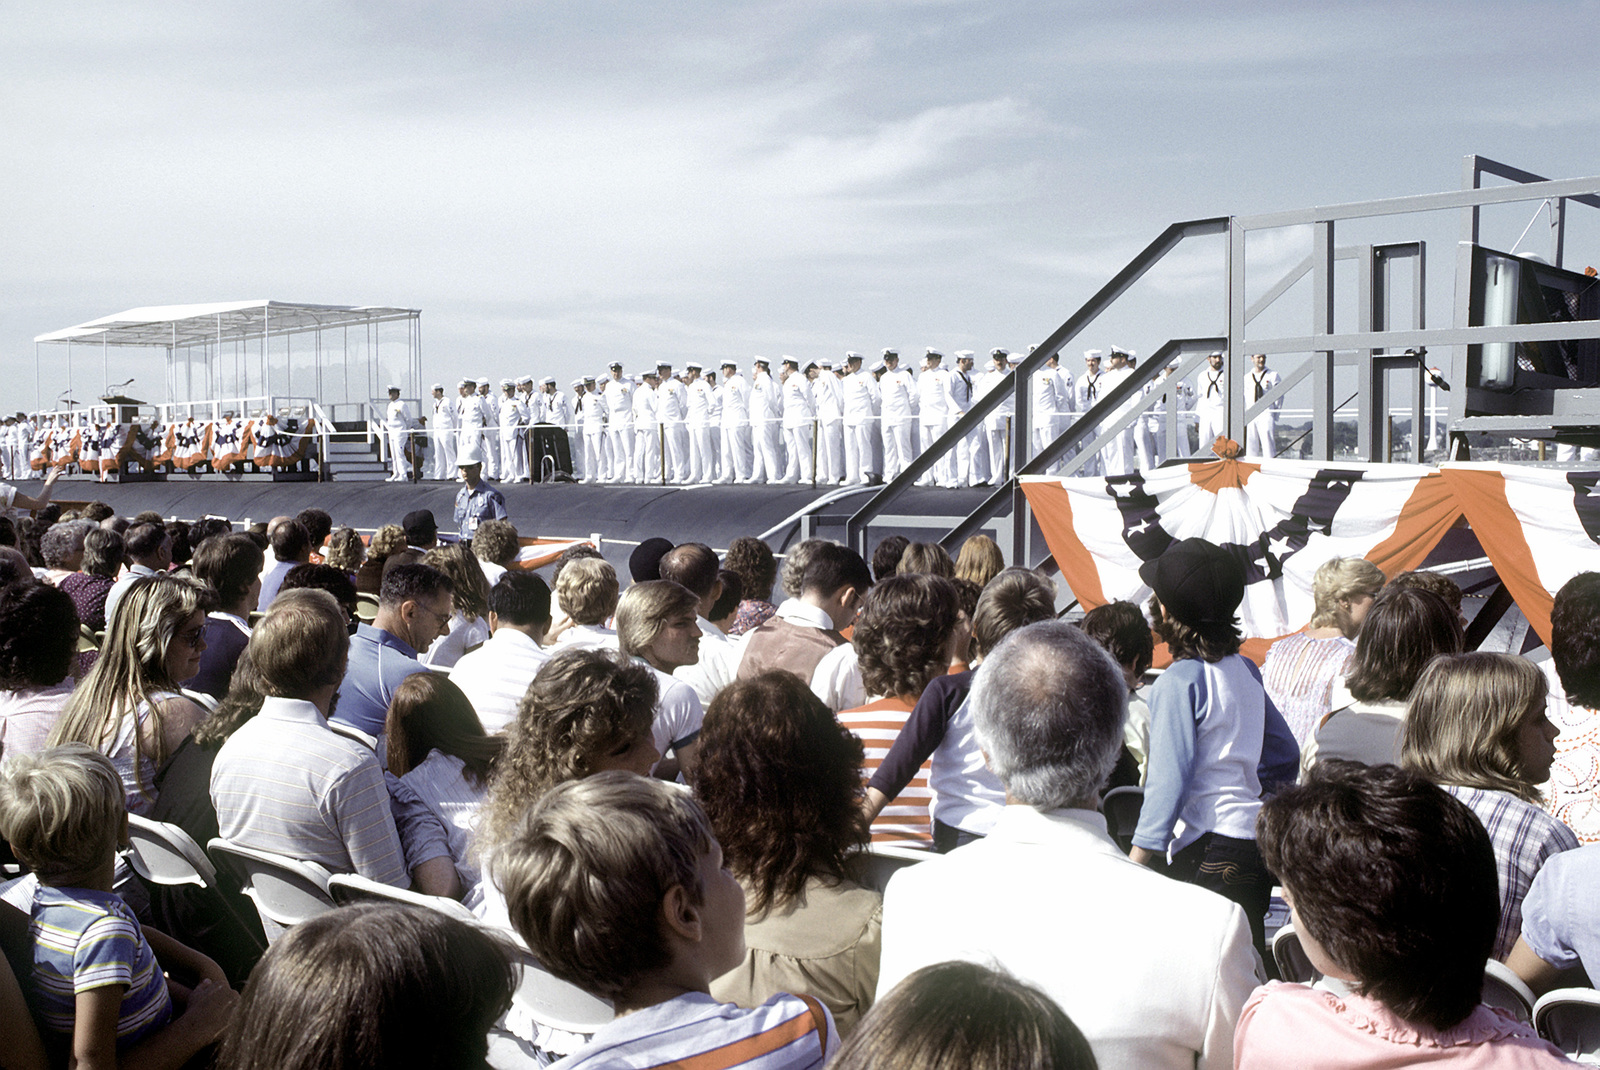 The crew of the nuclear-powered strategic missile submarine